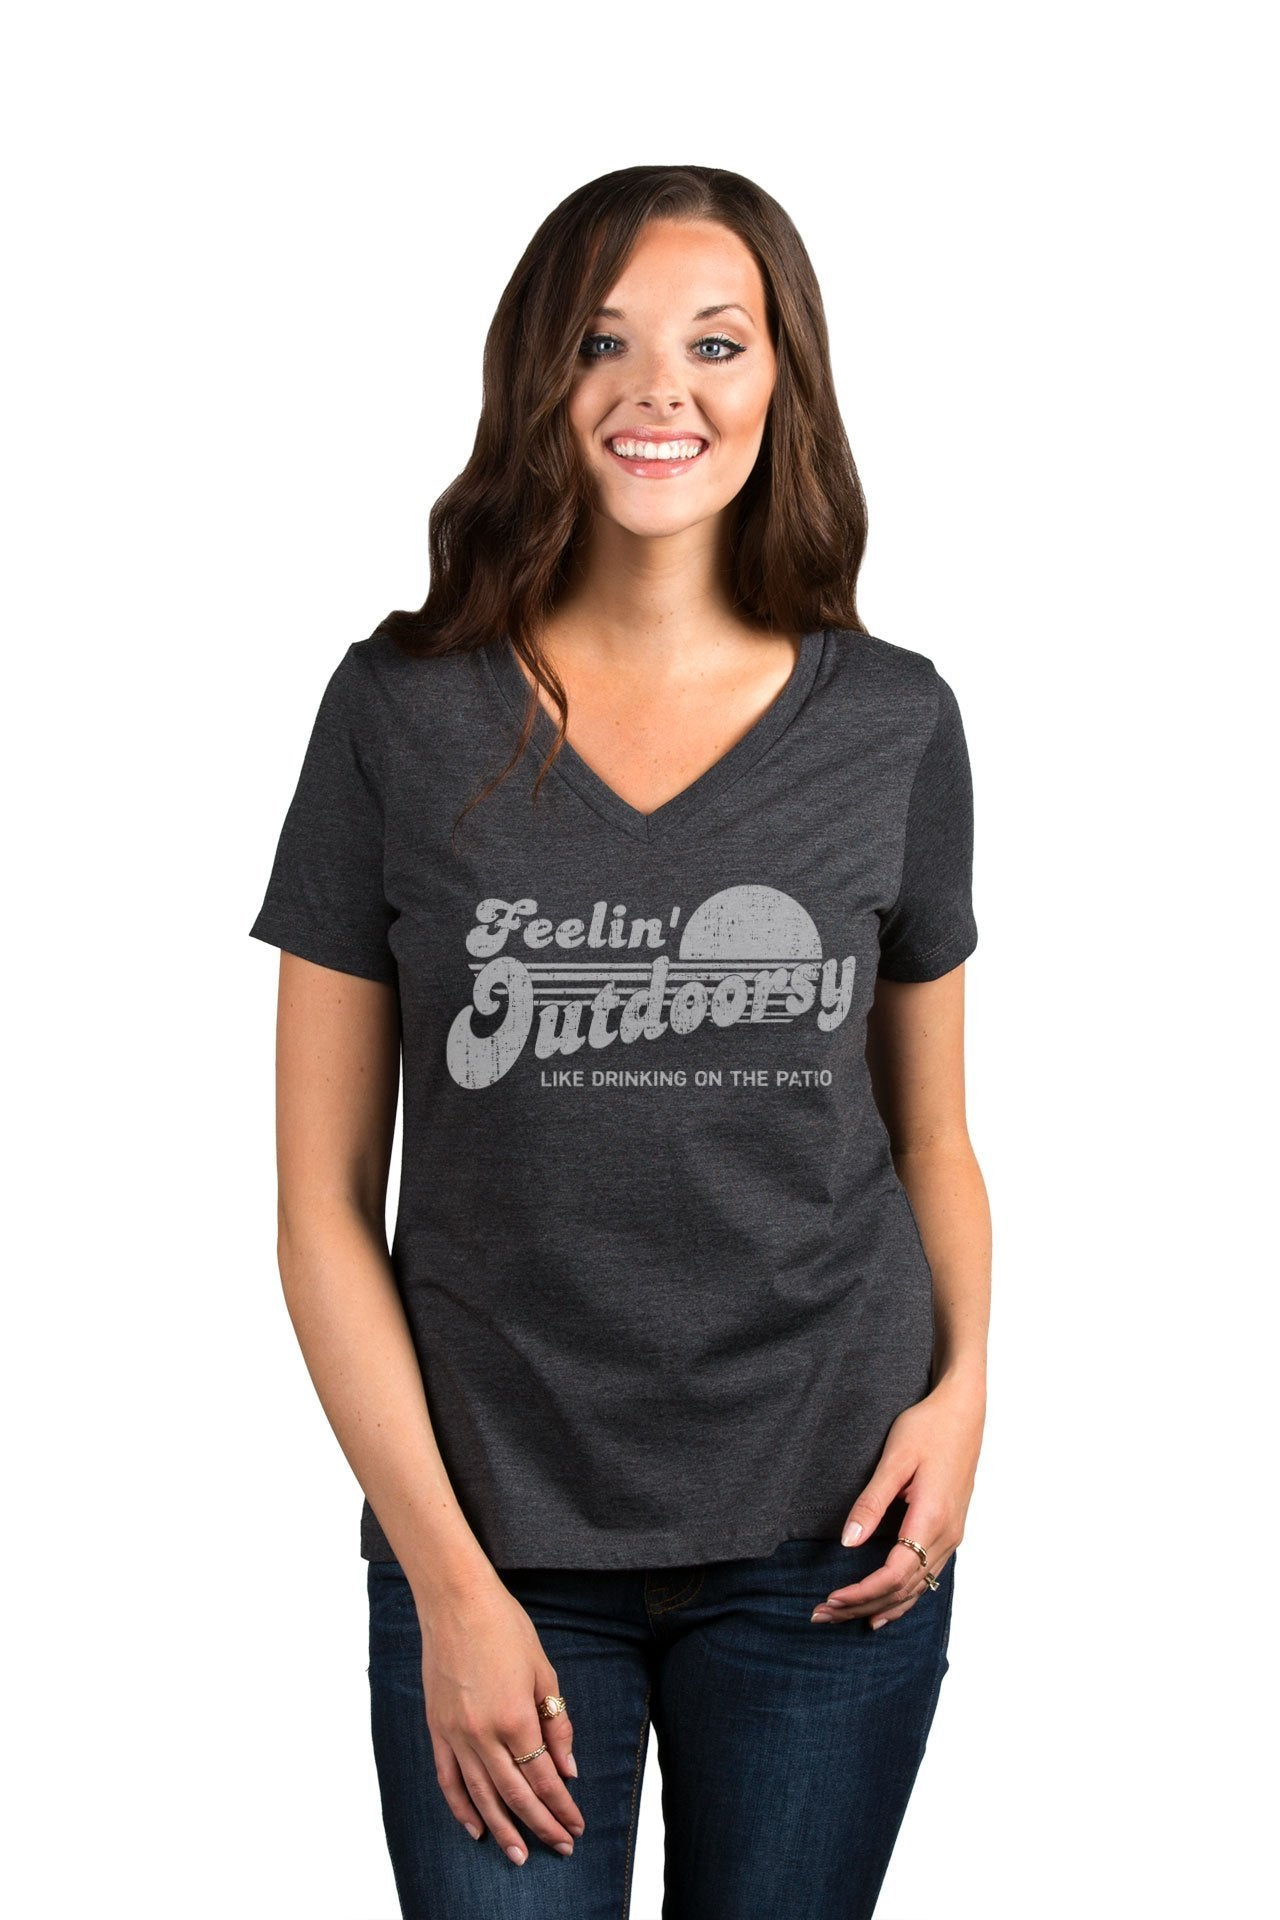 Feelin Outdoorsy Like Drinking On The Patio Women's Relaxed Crewneck T-Shirt Top Tee Charcoal Grey